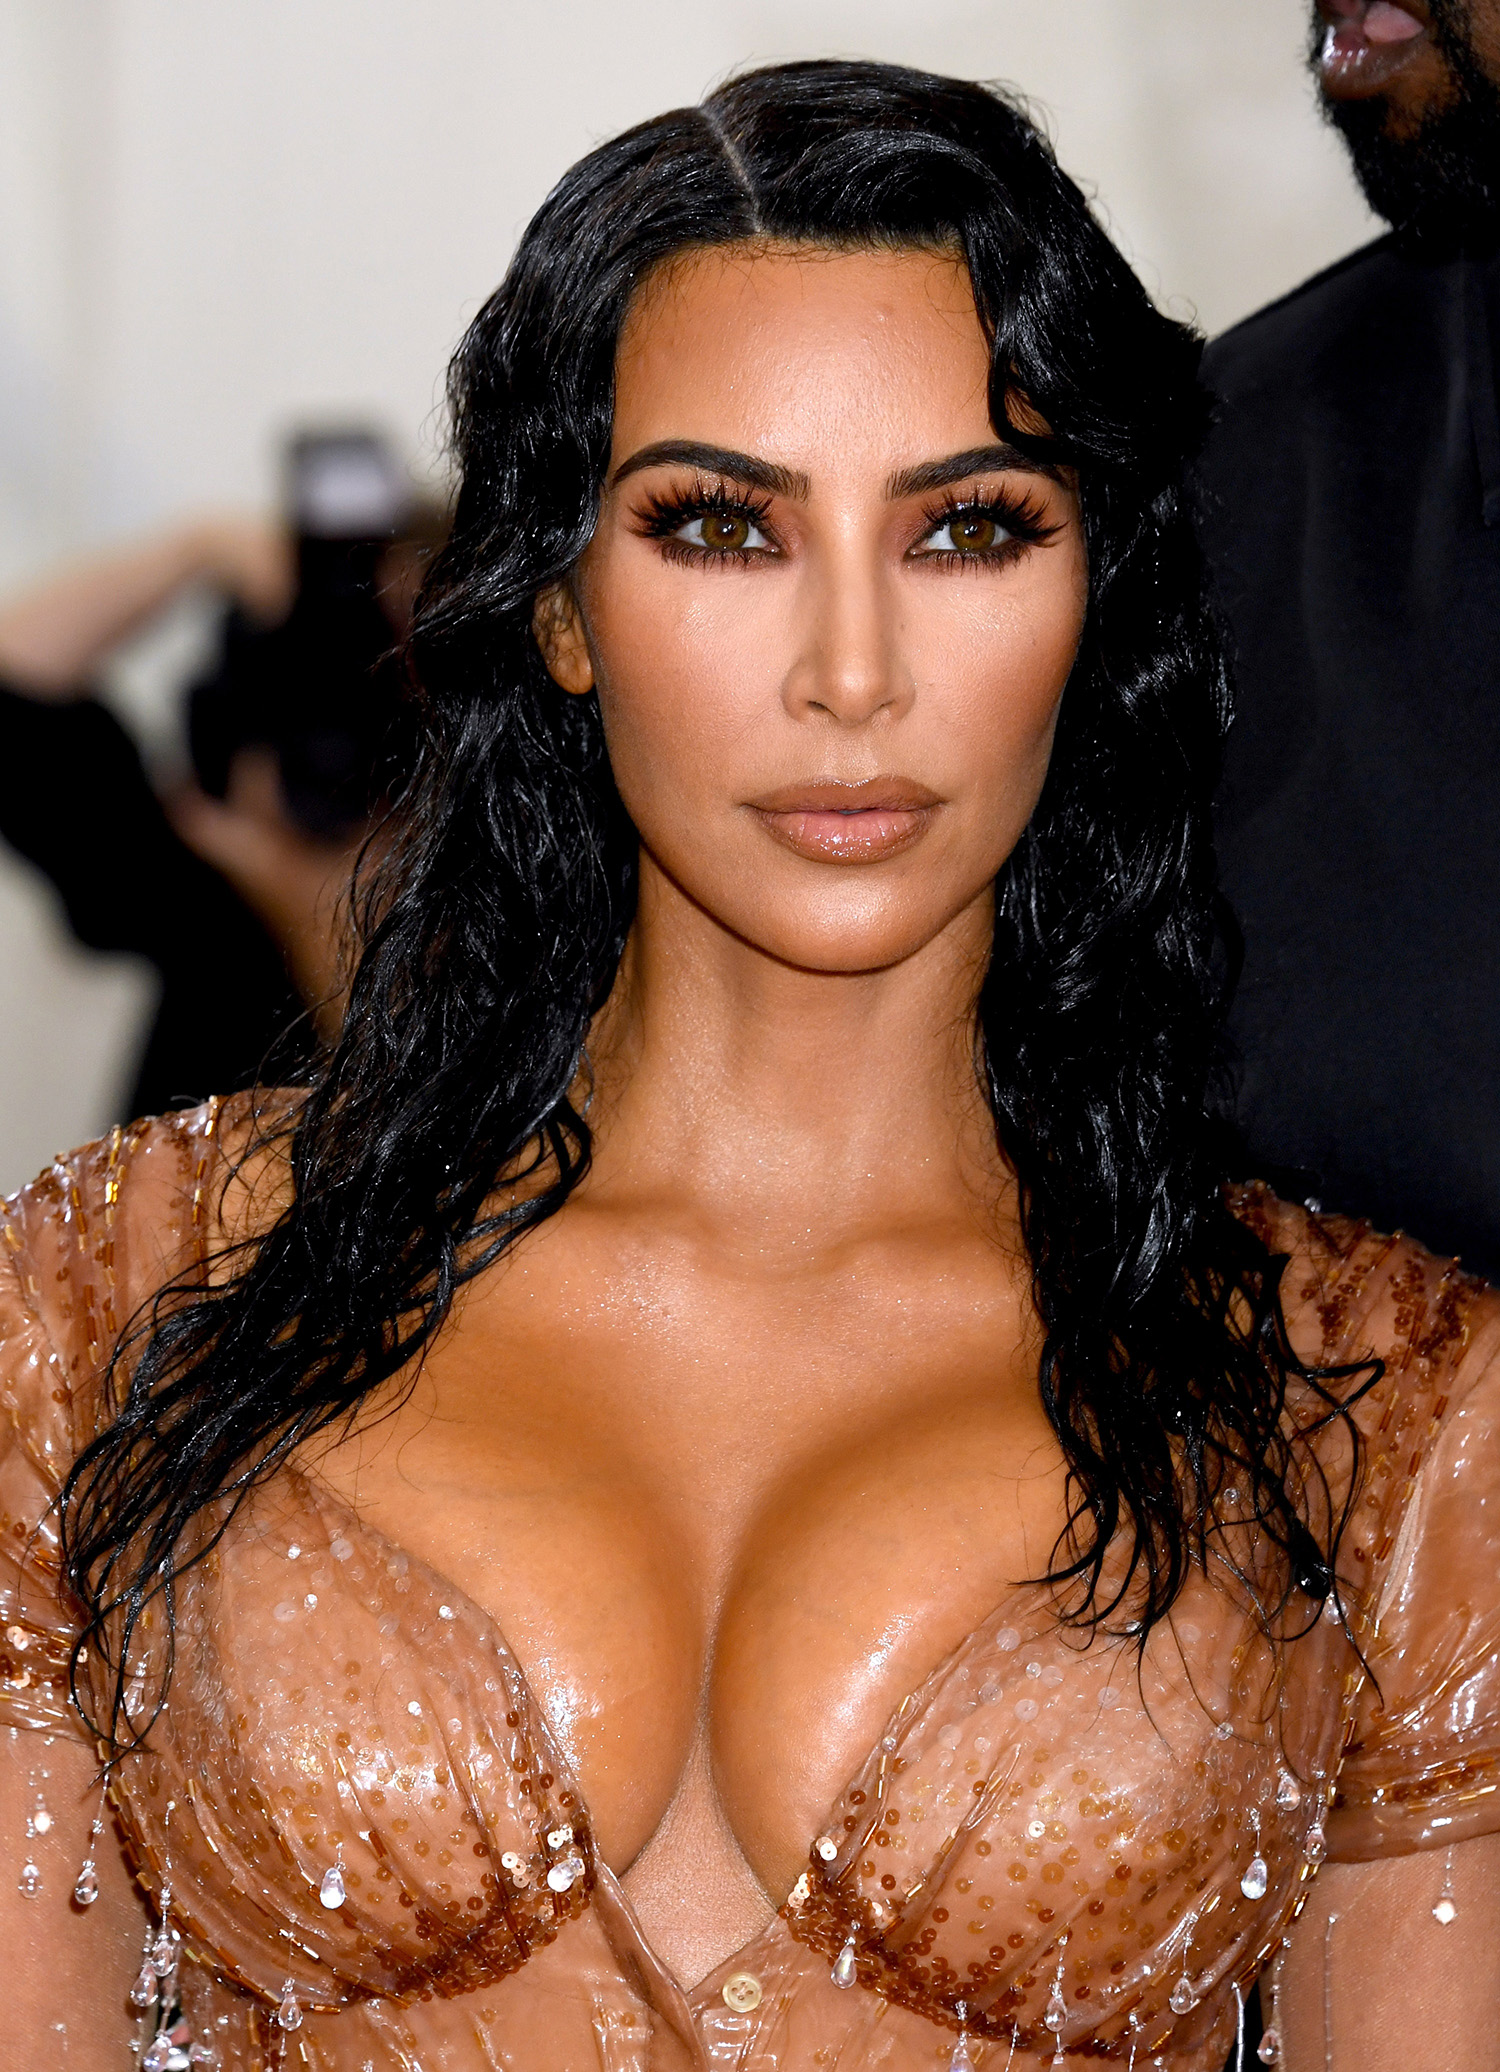 Kim Kardashian wet look hair